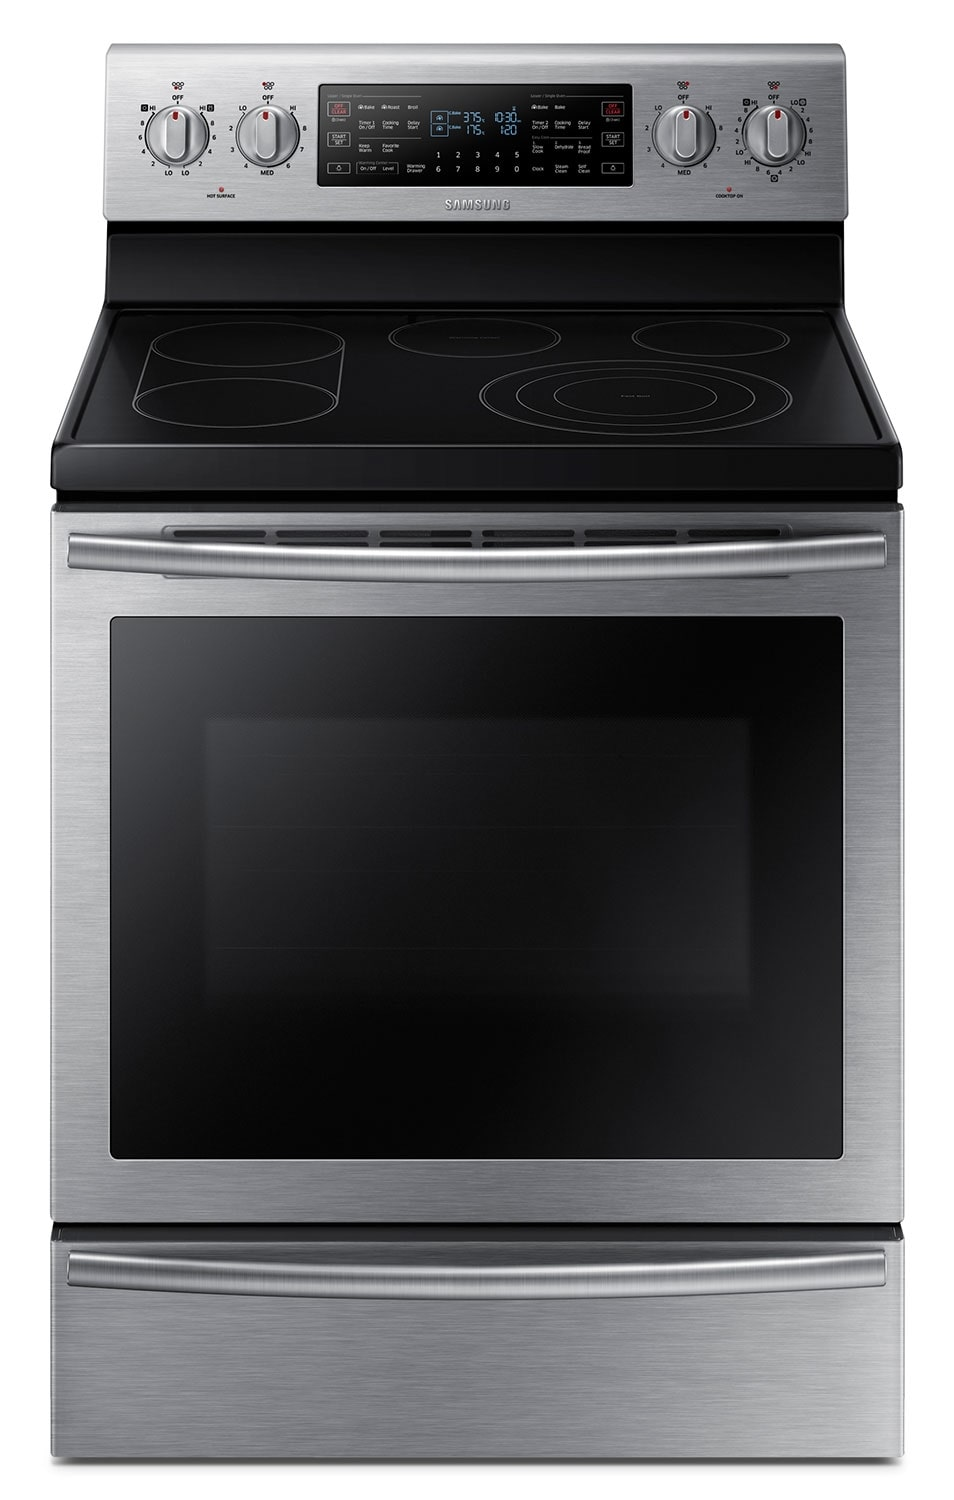 Samsung Stainless Steel Electric Convection Range (5.9 Cu. Ft.) - NE59J7750WS/AC